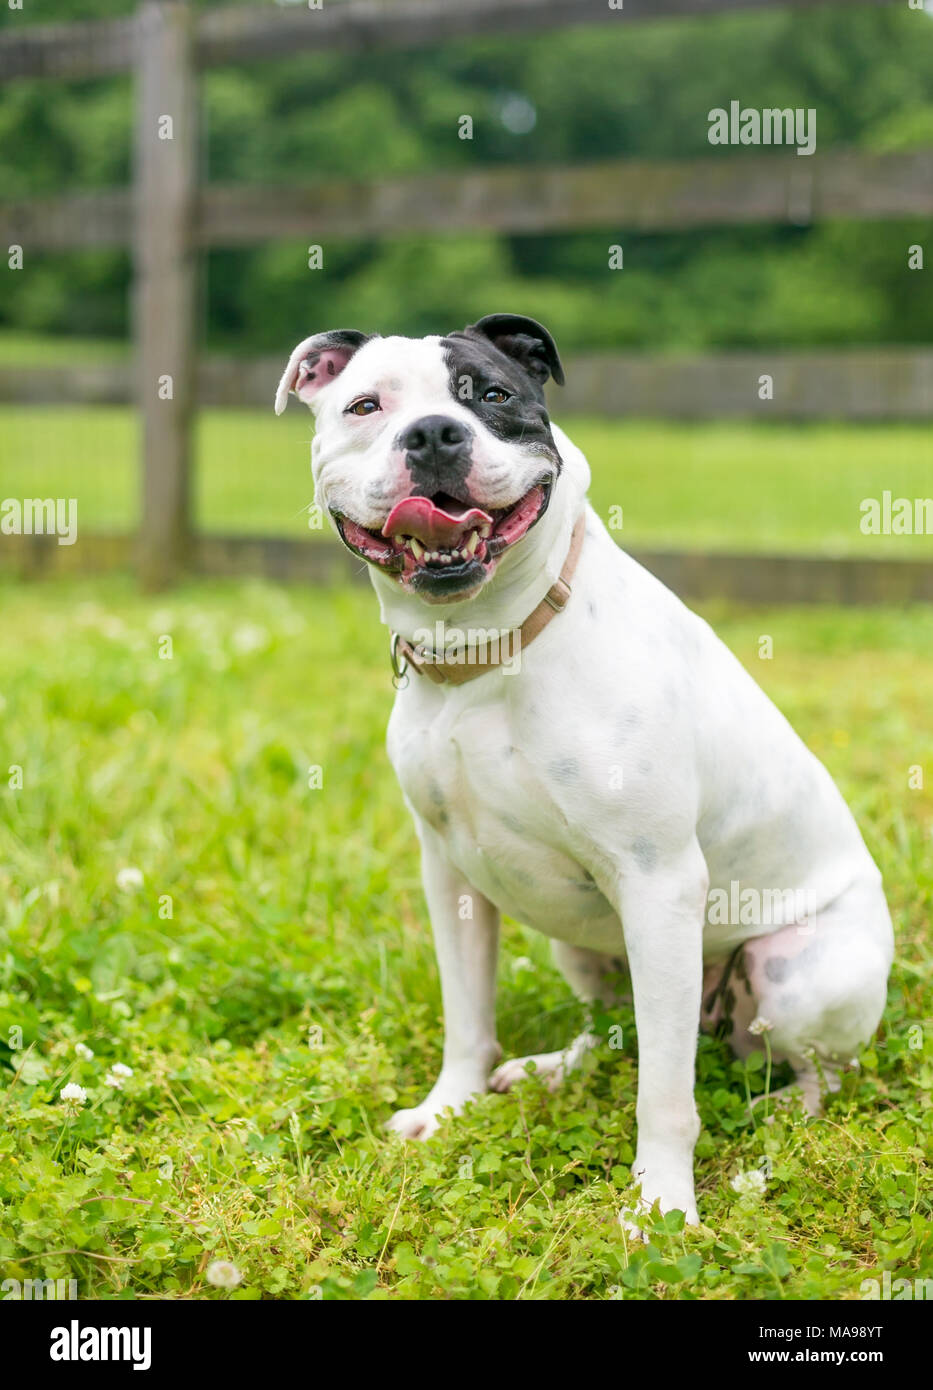 A happy black and white Staffordshire Bull Terrier dog - Stock Image